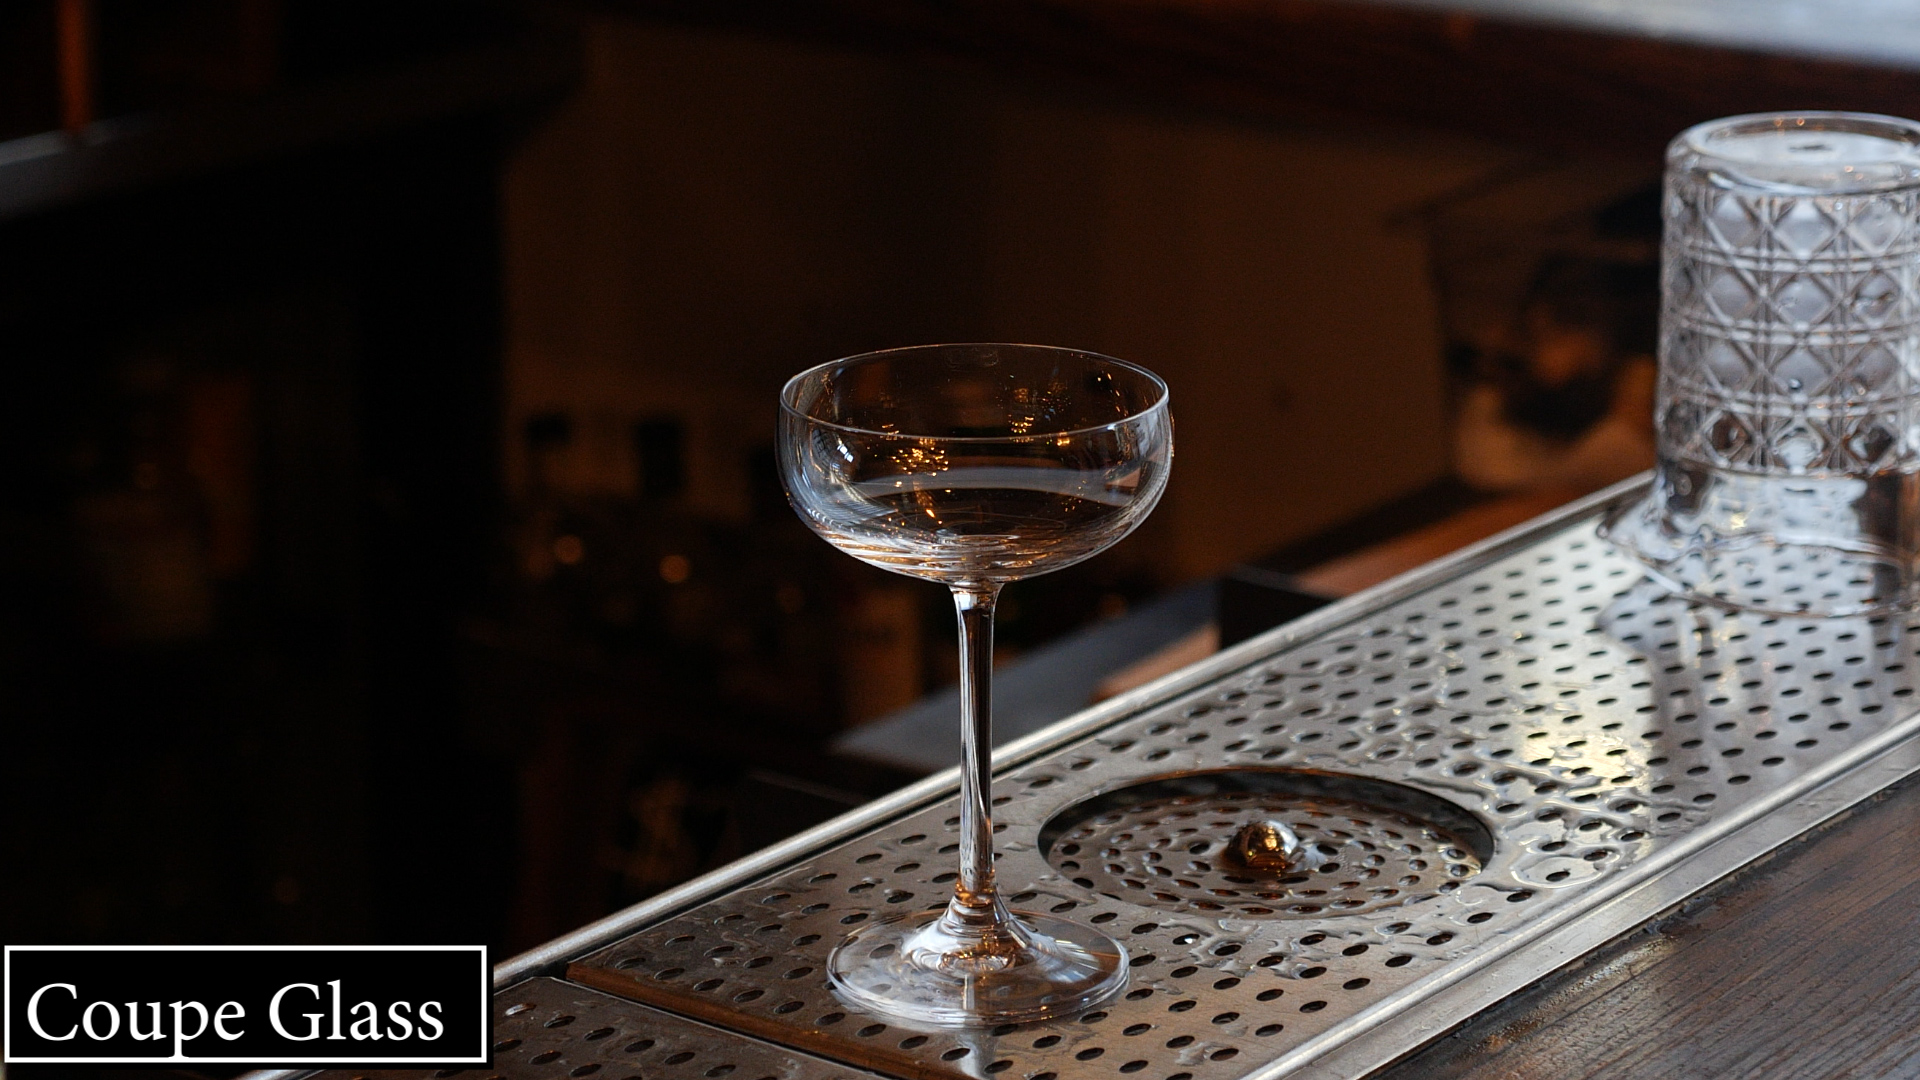 """This was the original Champagne glass! Famously believed to be modeled after a French Queen's body part, was actually introduced a century before her time - in 1663! It lost popularity as a vessel for sparkling wines because the bubbles dissipated too quickly into the nose. The flute soon became the preferred glass for that purpose. However, the coupe got a big boost in popularity from the post-prohibited United States in the 1930's as the original cocktail glass. [See the famous picture of President Franklin D. Roosevelt toasting the end of Prohibition with a Martini!]  The coupe is used for any drink that is served """"up"""", such as the Martini, Manhattan, Sidecar, Whiskey Sour, Gin Fizz. There's  never  any ice in this glass - and every cocktail that is poured out of a tin and into a coupe should be double-strained.  TIP:  Generally, it's a good indication of the quality of cocktail you might expect from an establishment if you see coupe glasses lined up at the bar. First, you'll see that people are drinking cocktails (not just beer), but second, you'll know that the bar takes its glassware seriously. The 'Martini' glass with the wide, sharp, cone-like shape gained popularity in the 1980's as bartenders were adding more ingredients, cocktails like the Cosmopolitan came around and everything was about being bigger, better, and wackier then ever. The 'Martini' glass proved to be more fun than functional, as it turns out, and it was a fad that led to a lot of spilled drinks and broken glass! For years, bars would stock up on Martini glasses that measured anywhere from 5 to 10 liquid ounces at the top - imagine what a proper Gimlet (2oz Gin, ½ oz lime juice, ½ oz simple syrup, shaken with ice) would look like in a glass that big!"""